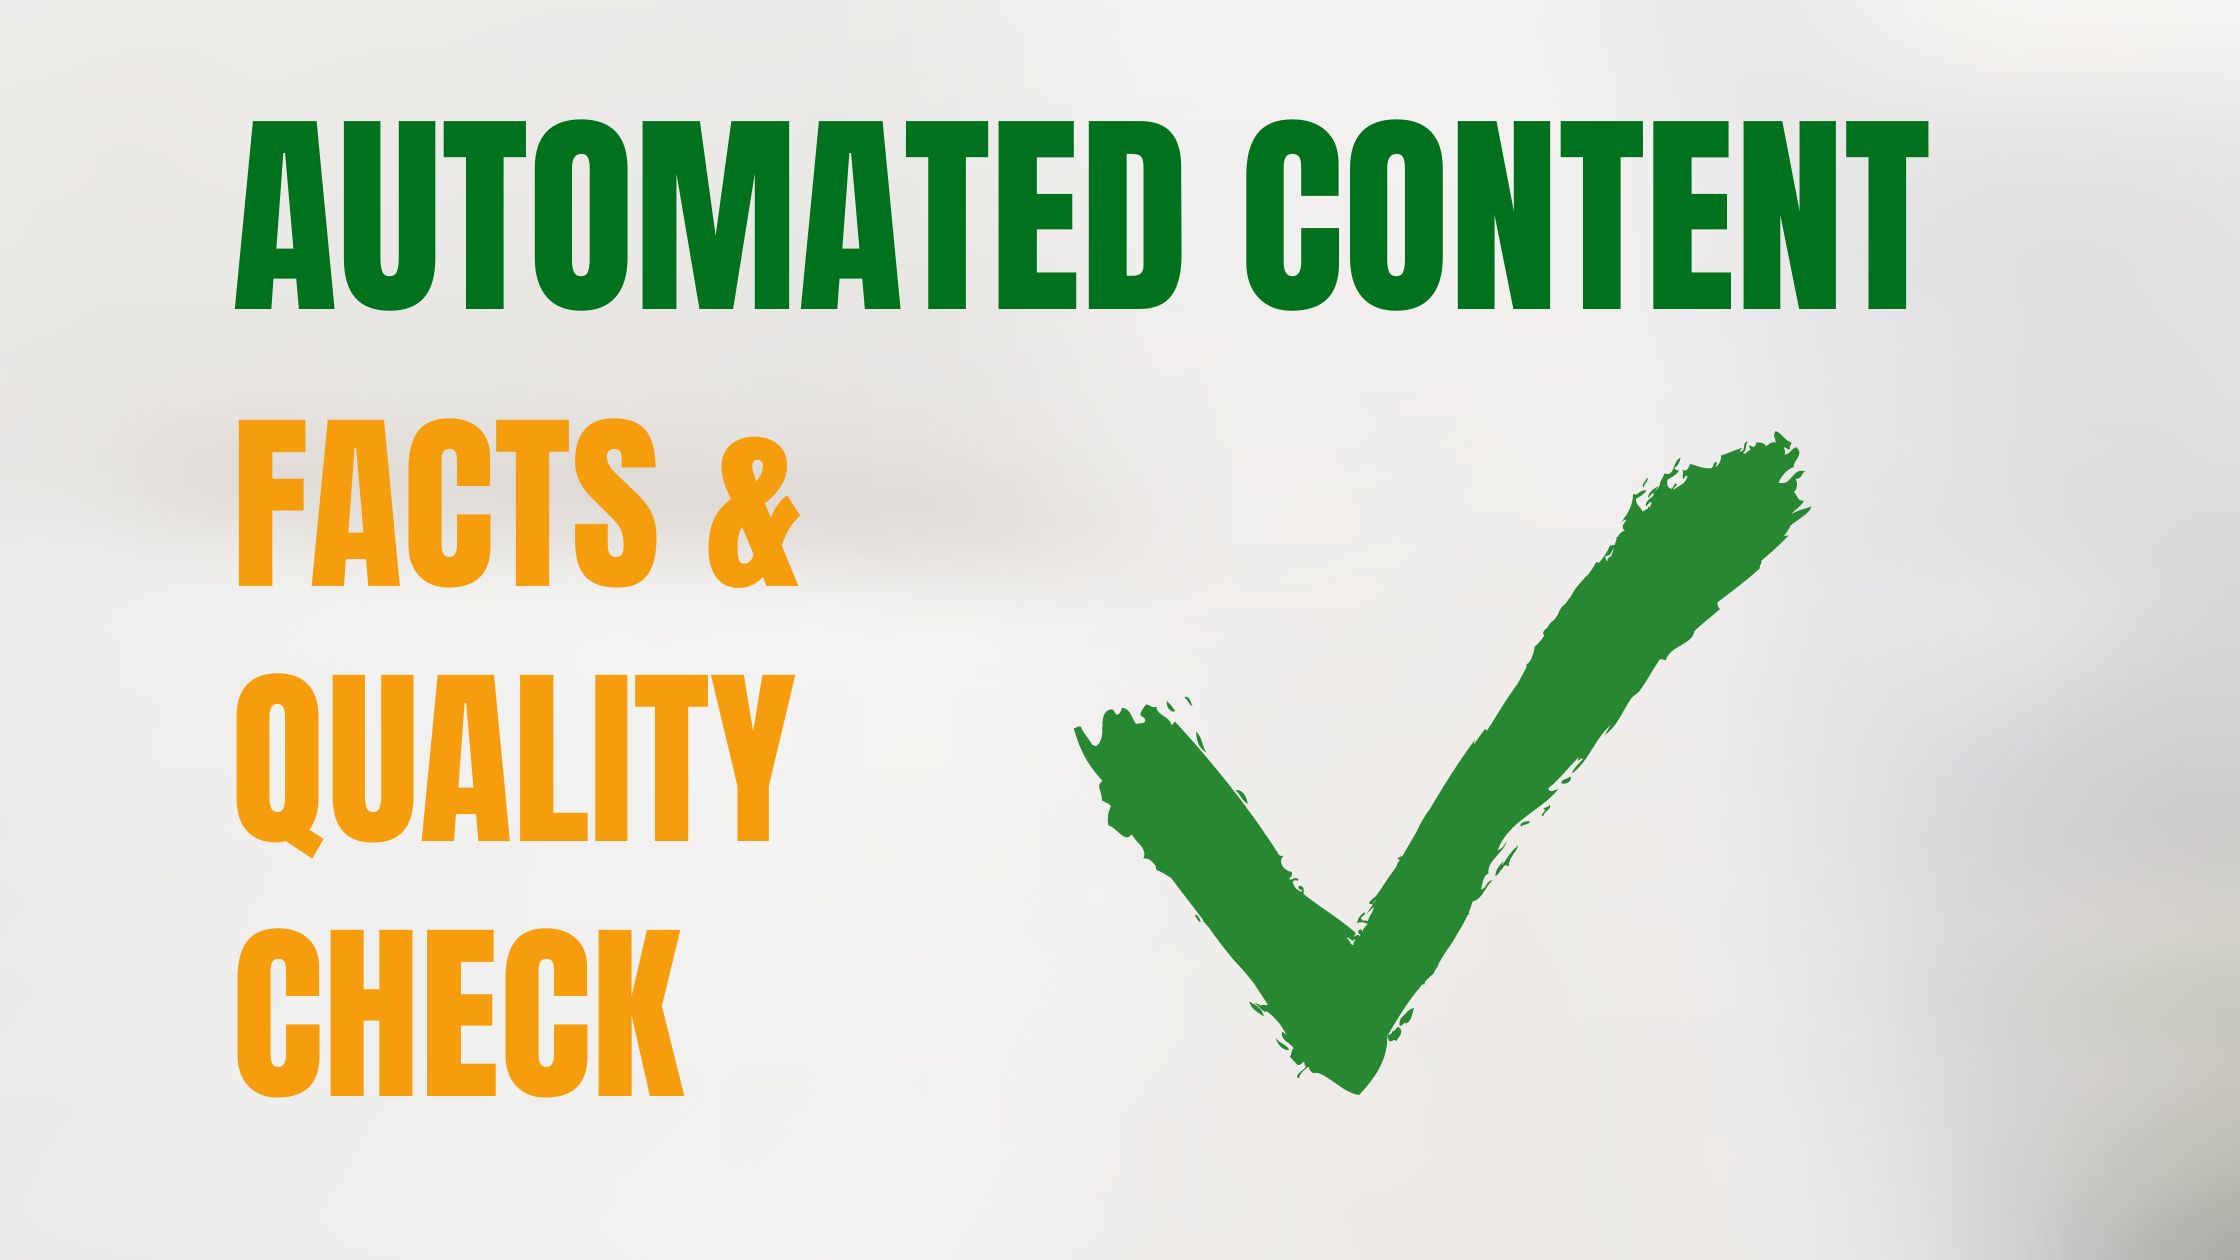 Automated Content: Facts & Quality Check